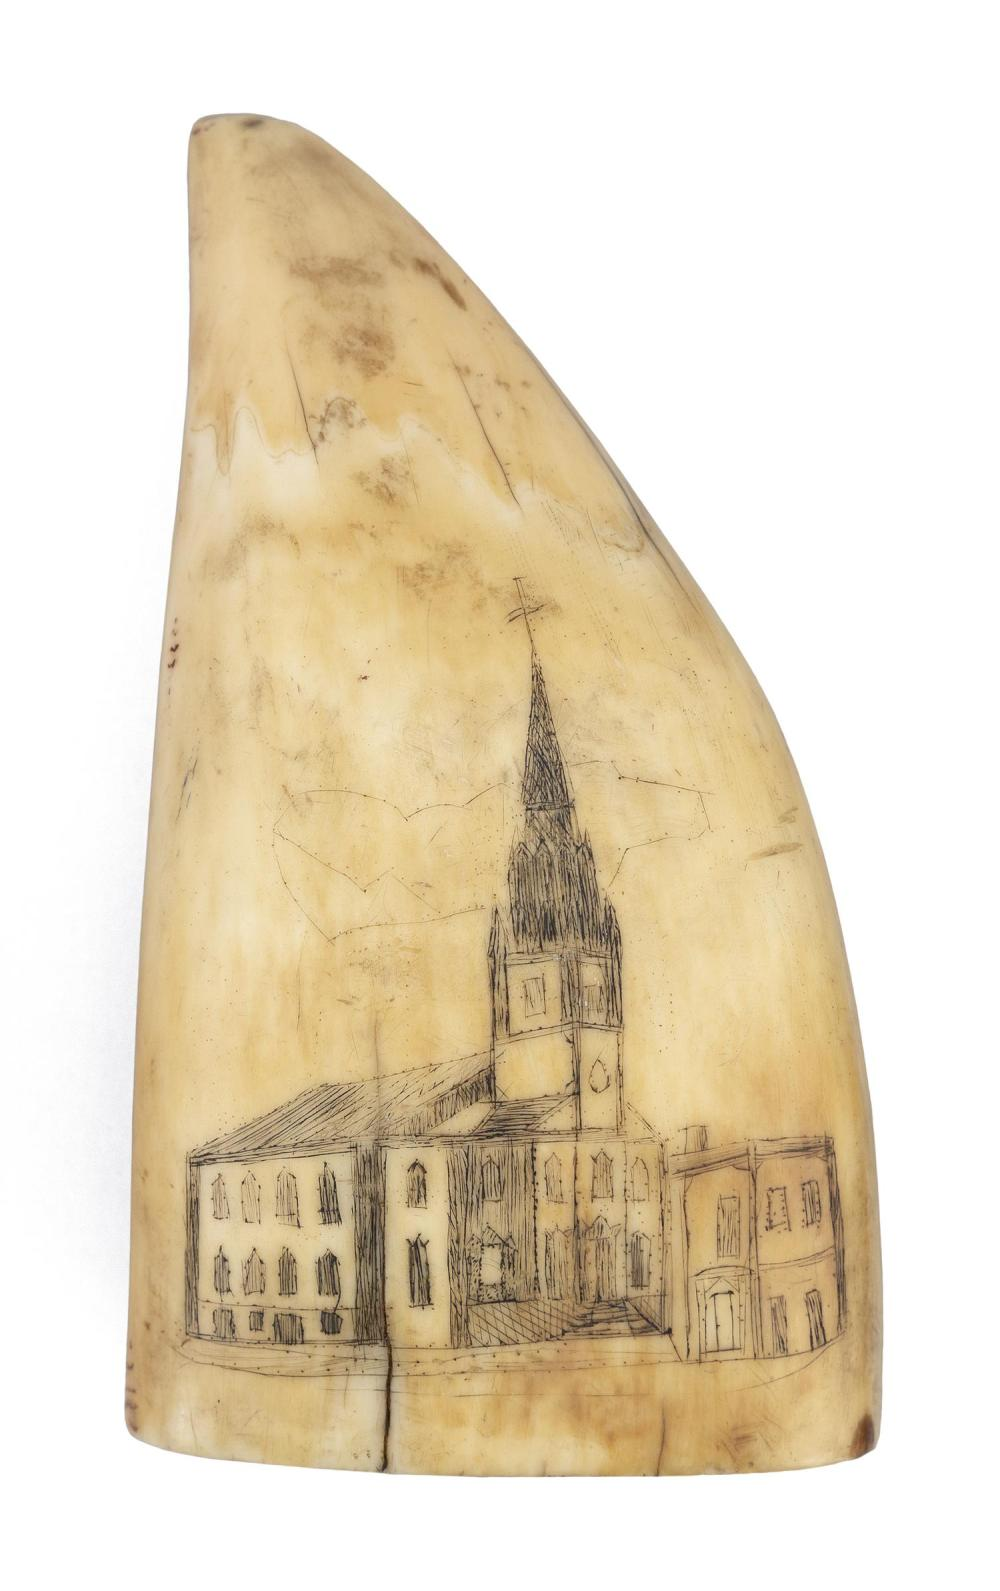 """SCRIMSHAW WHALE'S TOOTH DEPICTING A CHURCH Believed to be a scene in Portsmouth, New Hampshire. Some pinpoint elements. Length 4.5""""..."""